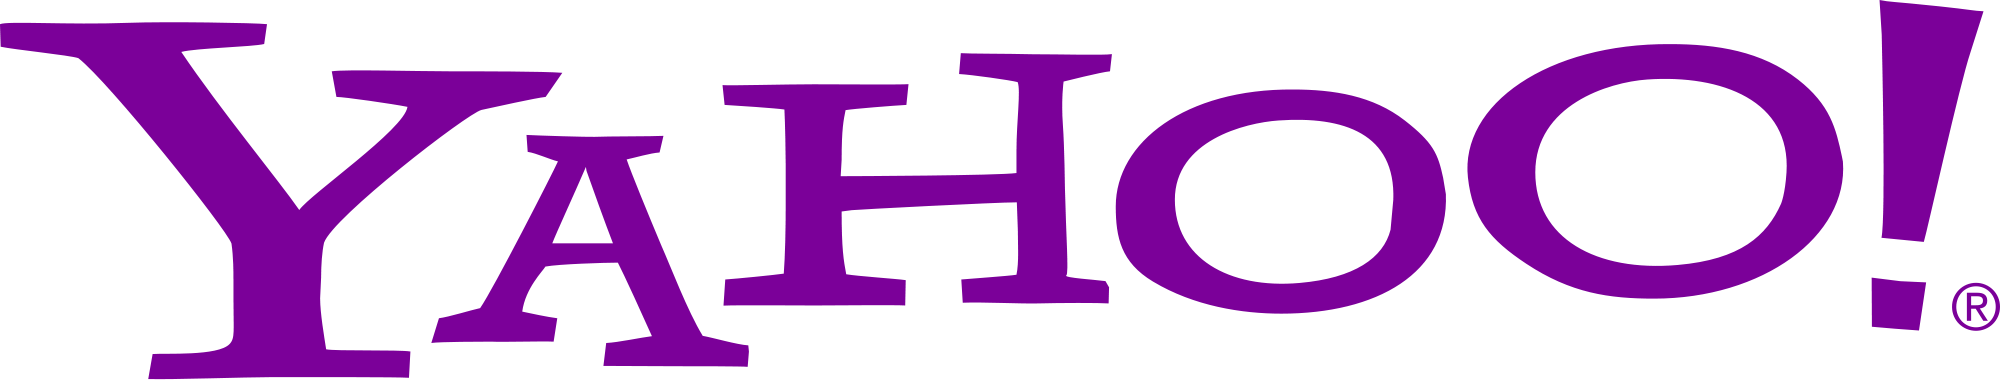 Yahoo logo png. File svg wikimedia commons